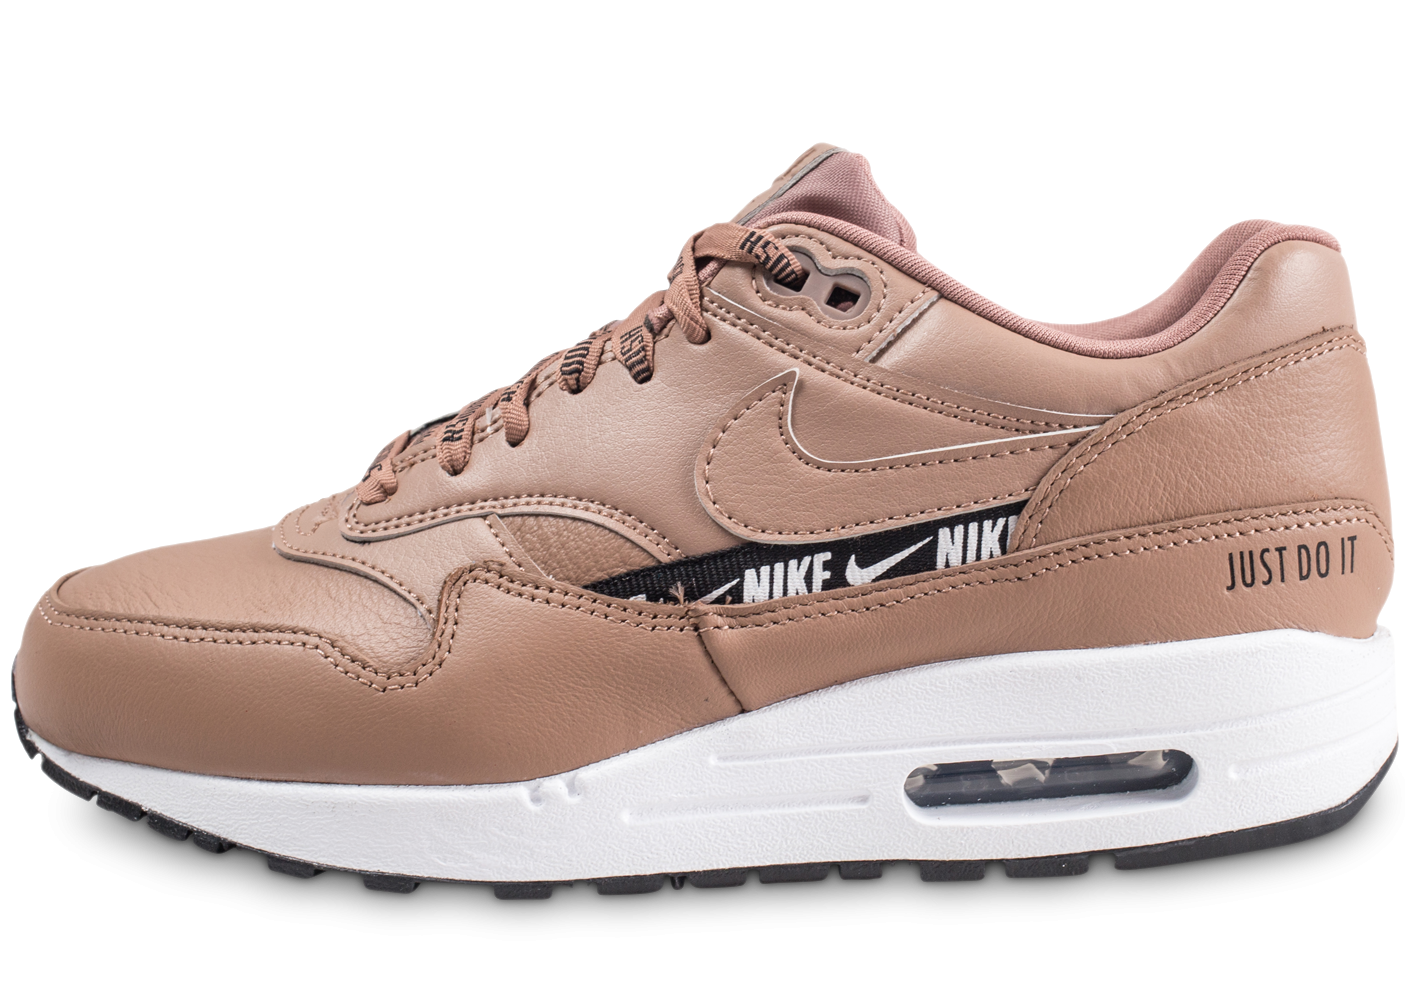 best authentic 88e92 809bd Nike Nike Air Max 1 SE Overbranded beige femme - Chaussures Baskets femme -  Chausport